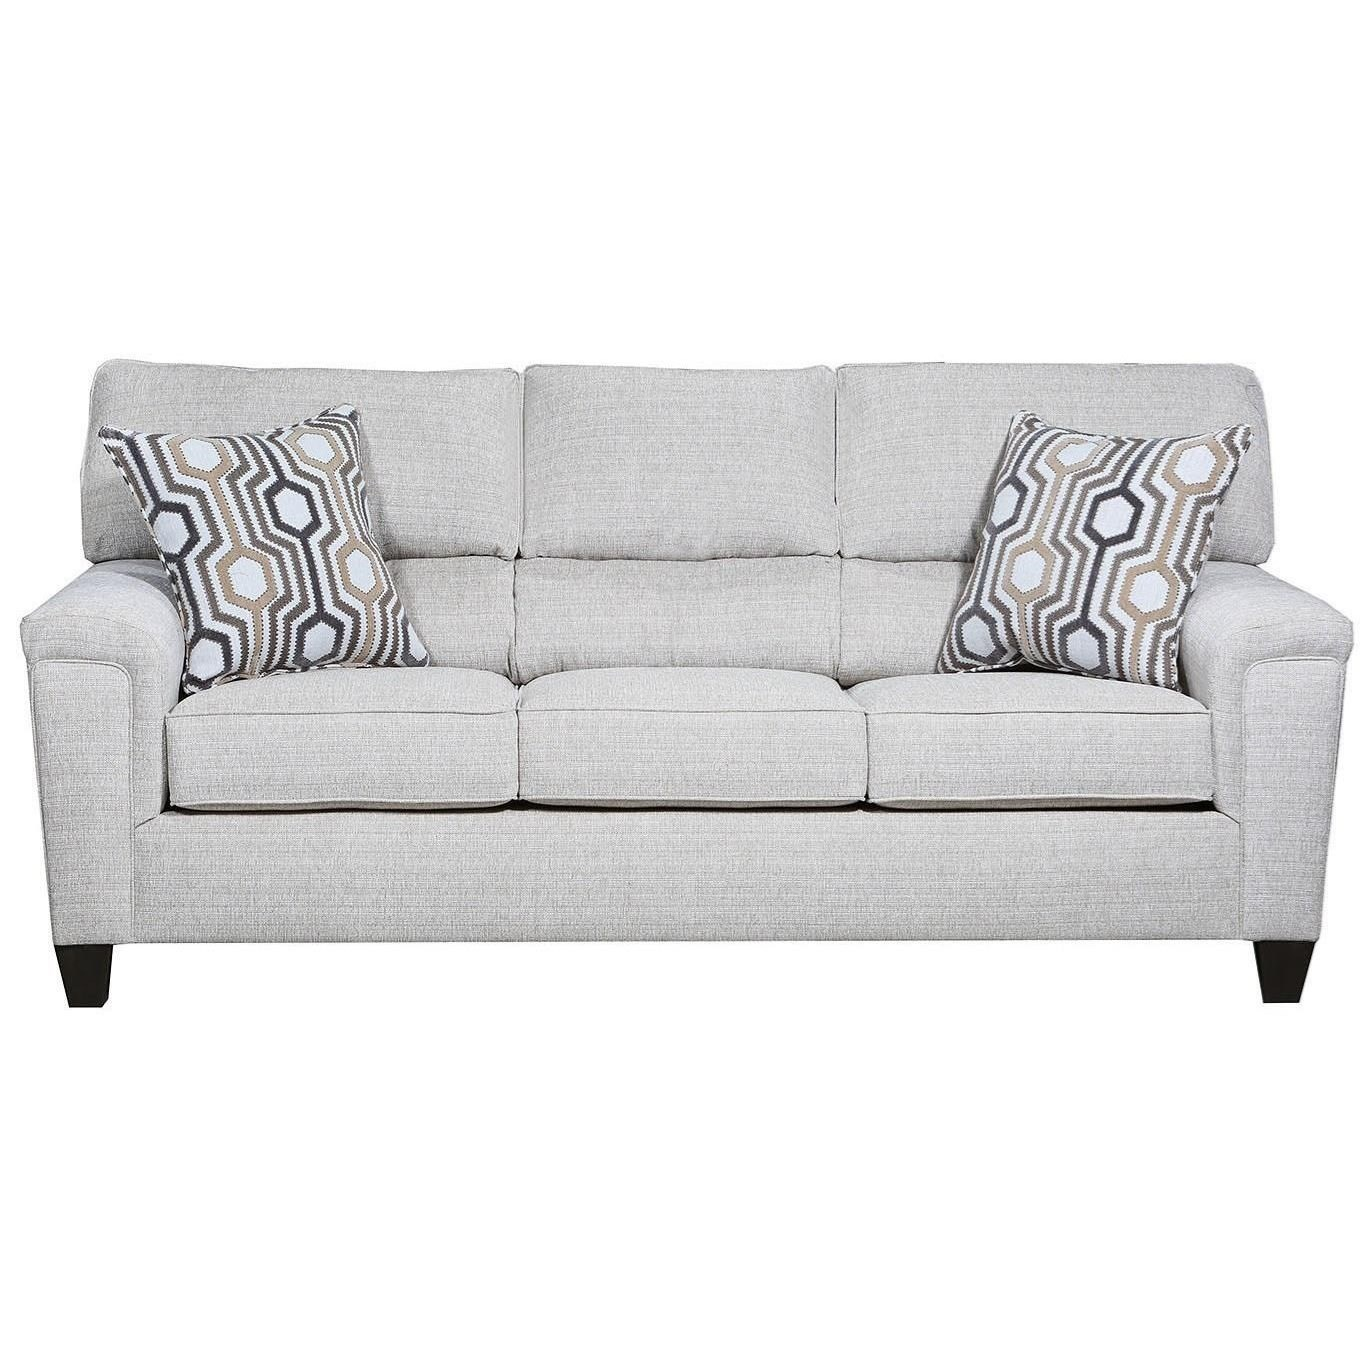 2015 Stationary Sofa by Lane at Powell's Furniture and Mattress